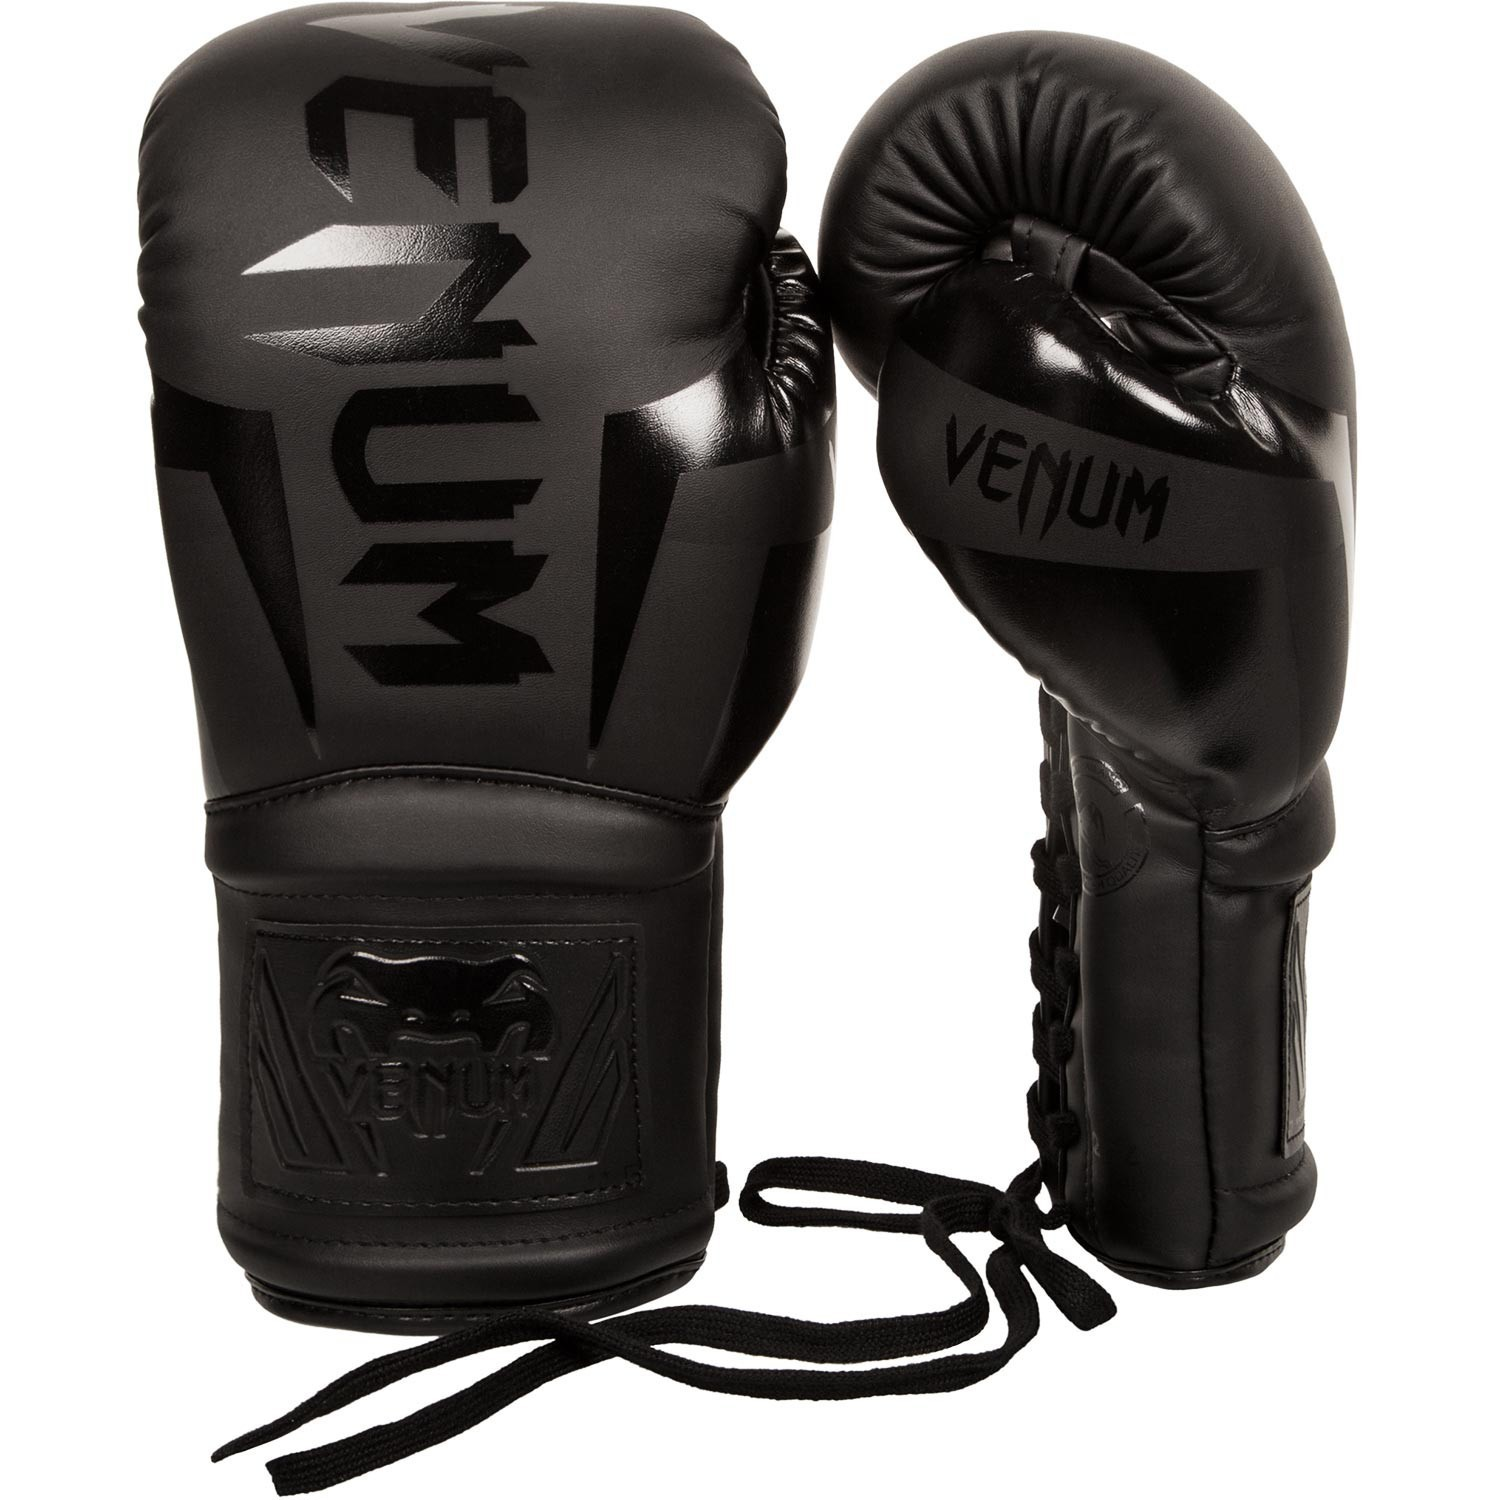 GĂNG TAY VENUM ELITE BOXING GLOVES WITH LACES